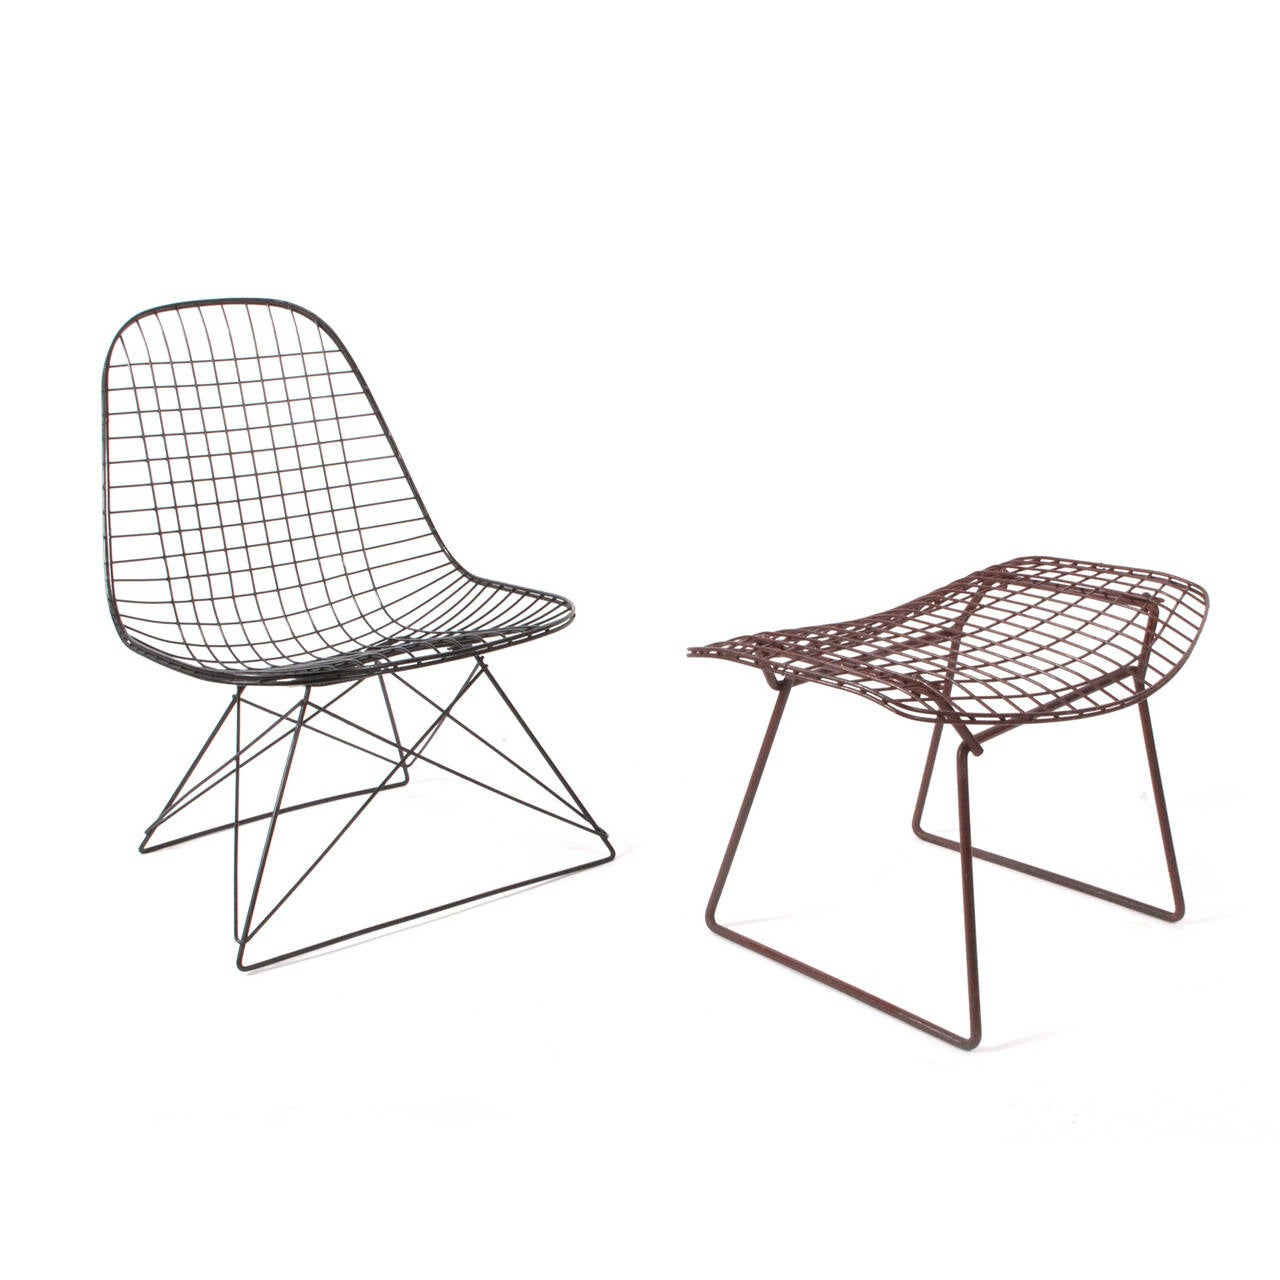 LKR-2 Charles Eames Wire Lounge Chair and Harry Bertoia